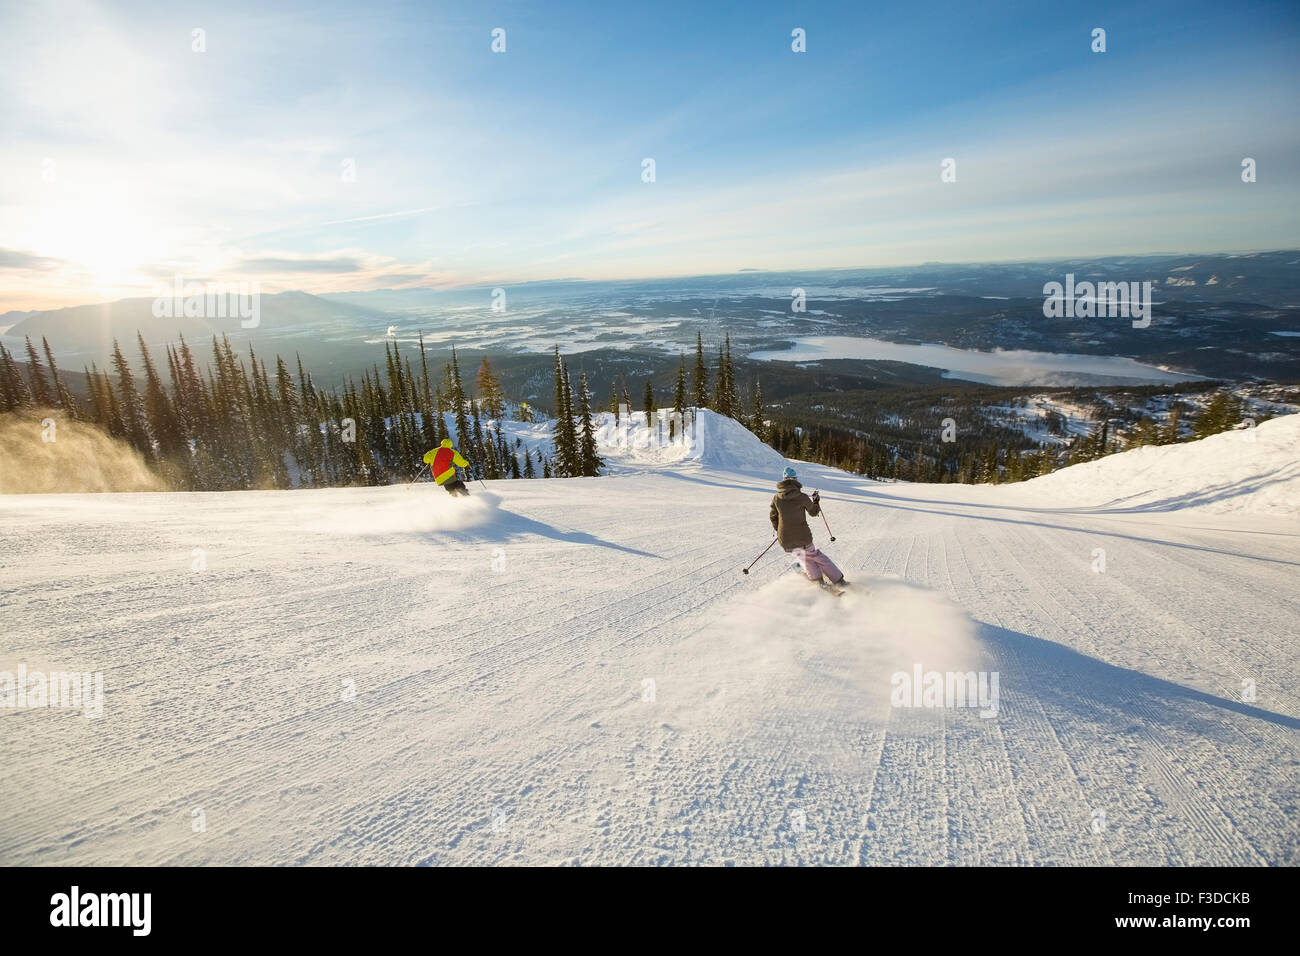 Two people on ski slope at sunlight - Stock Image